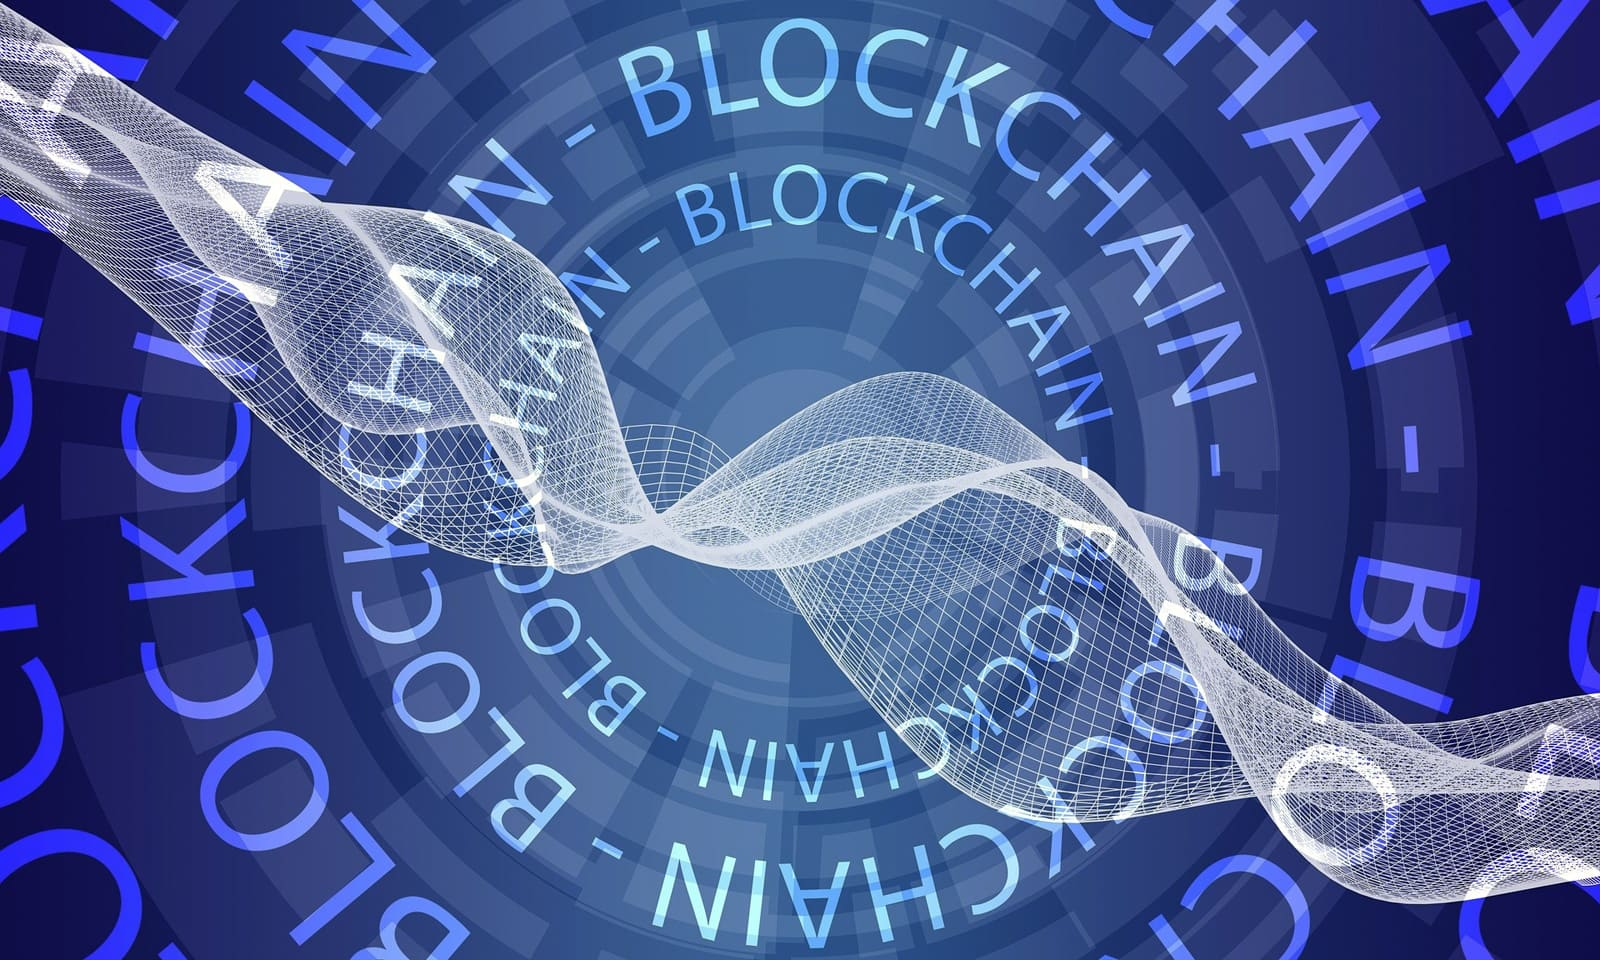 The benefits of blockchain-enabled decentralization and data reconstruction